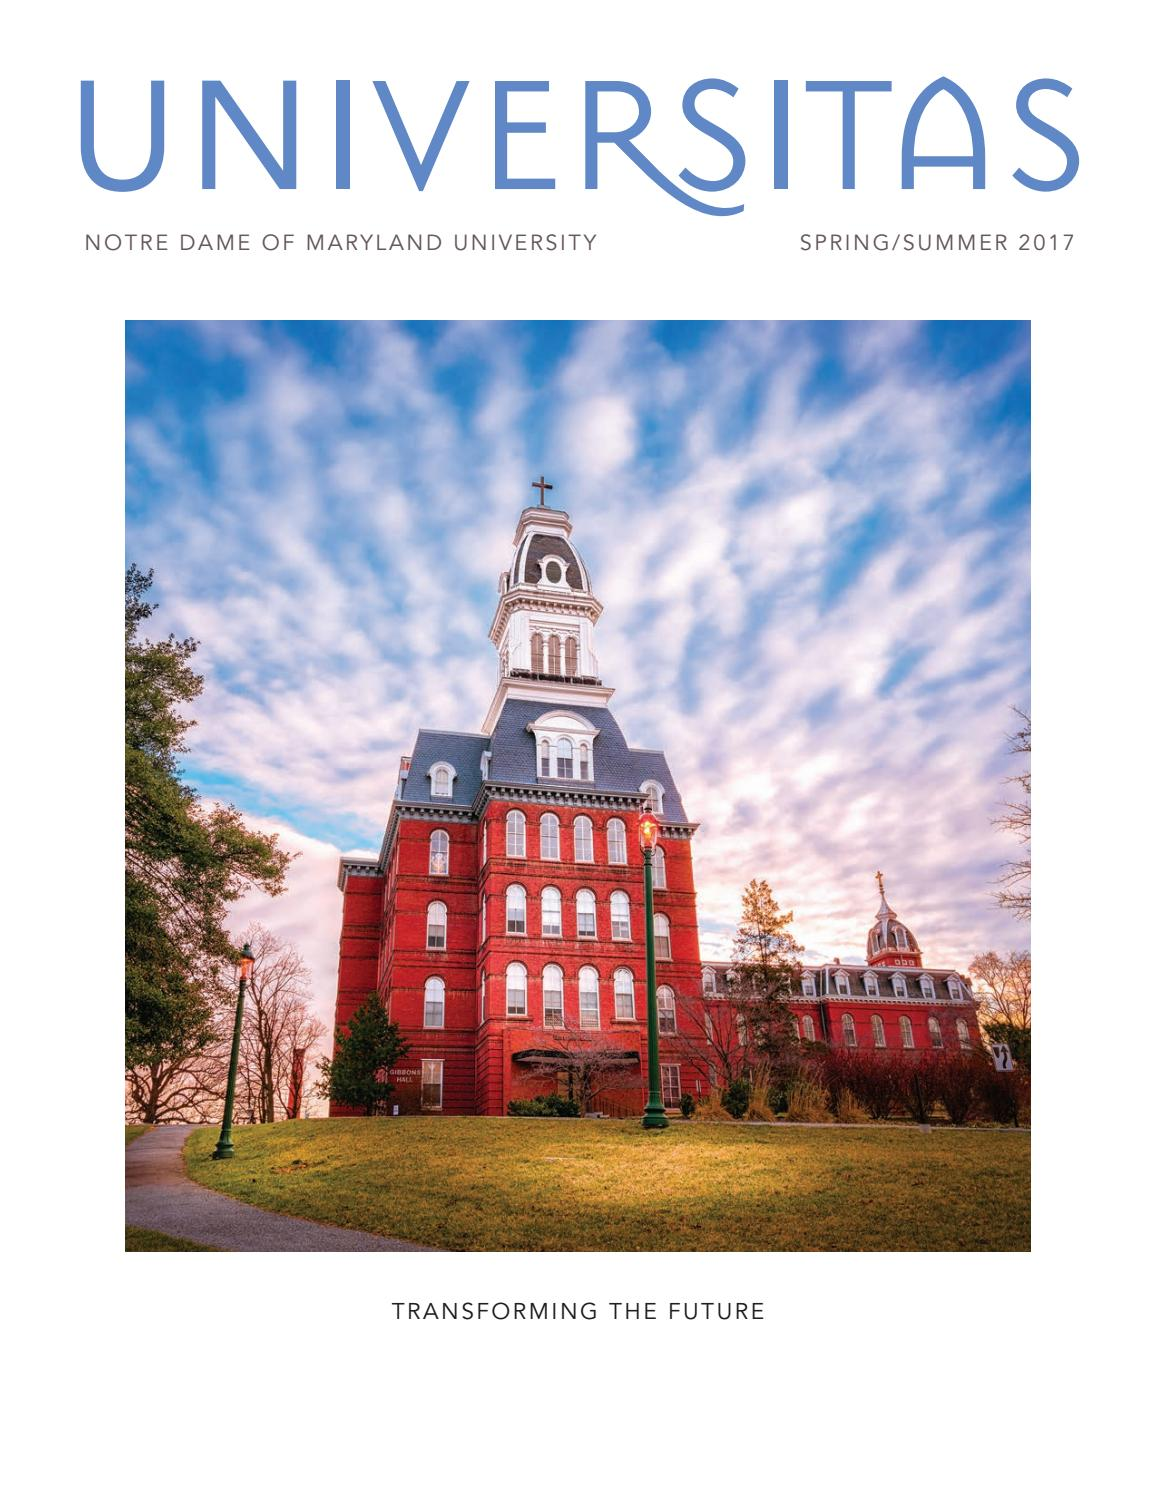 a place to call home by amy schisler reviews discussion a place to call home book NDMU Universitas by Notre Dame of Maryland University - issuu